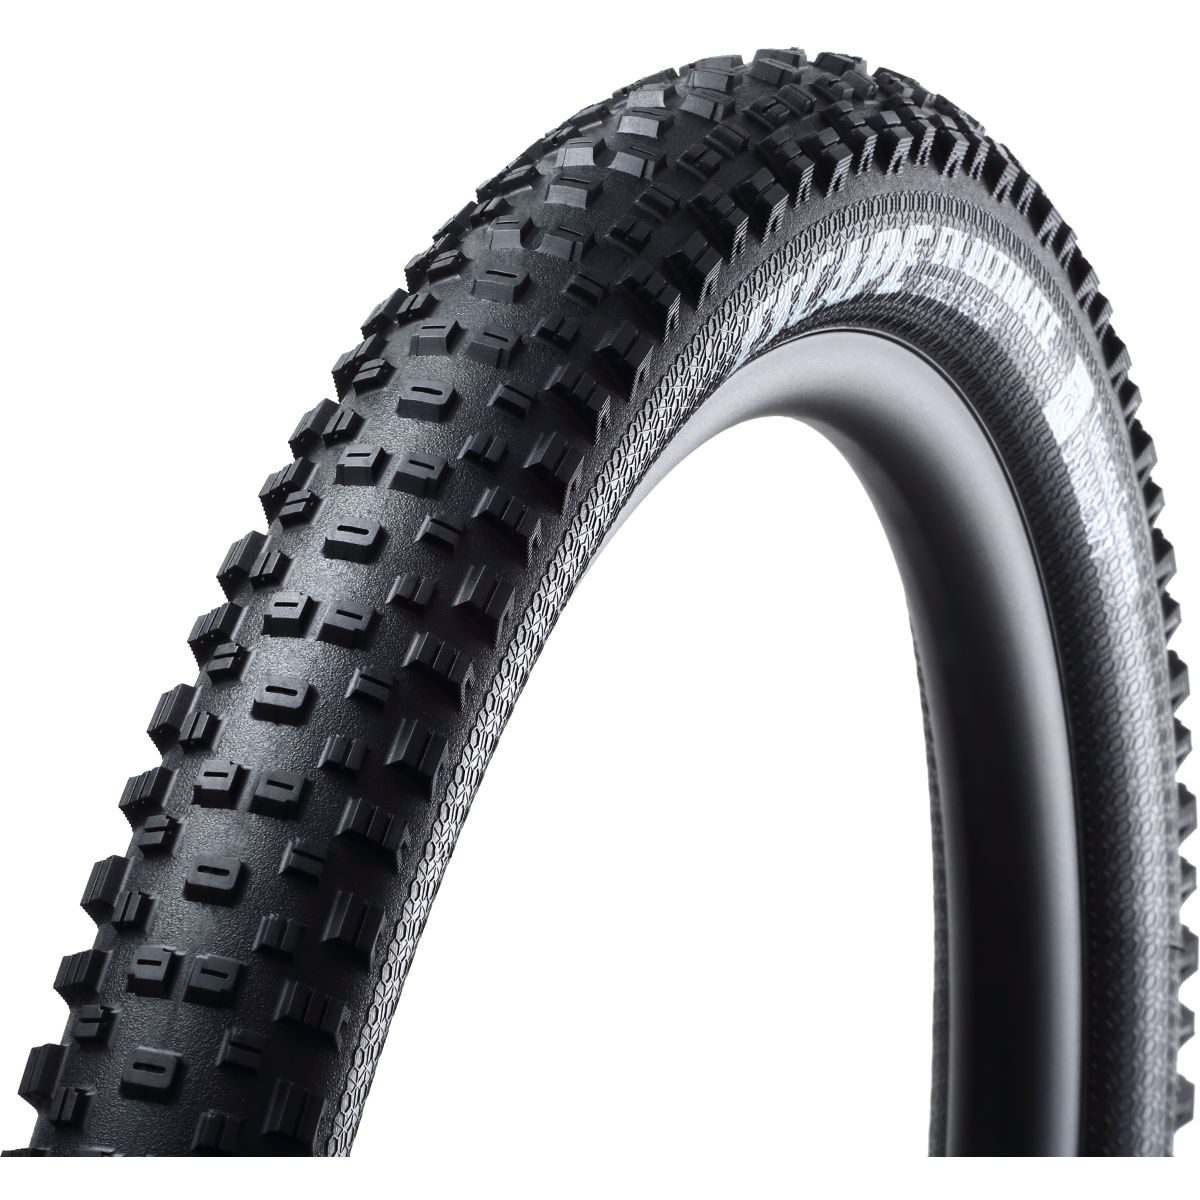 Goodyear Escape Premium Tubeless MTB Tyre - Cubiertas